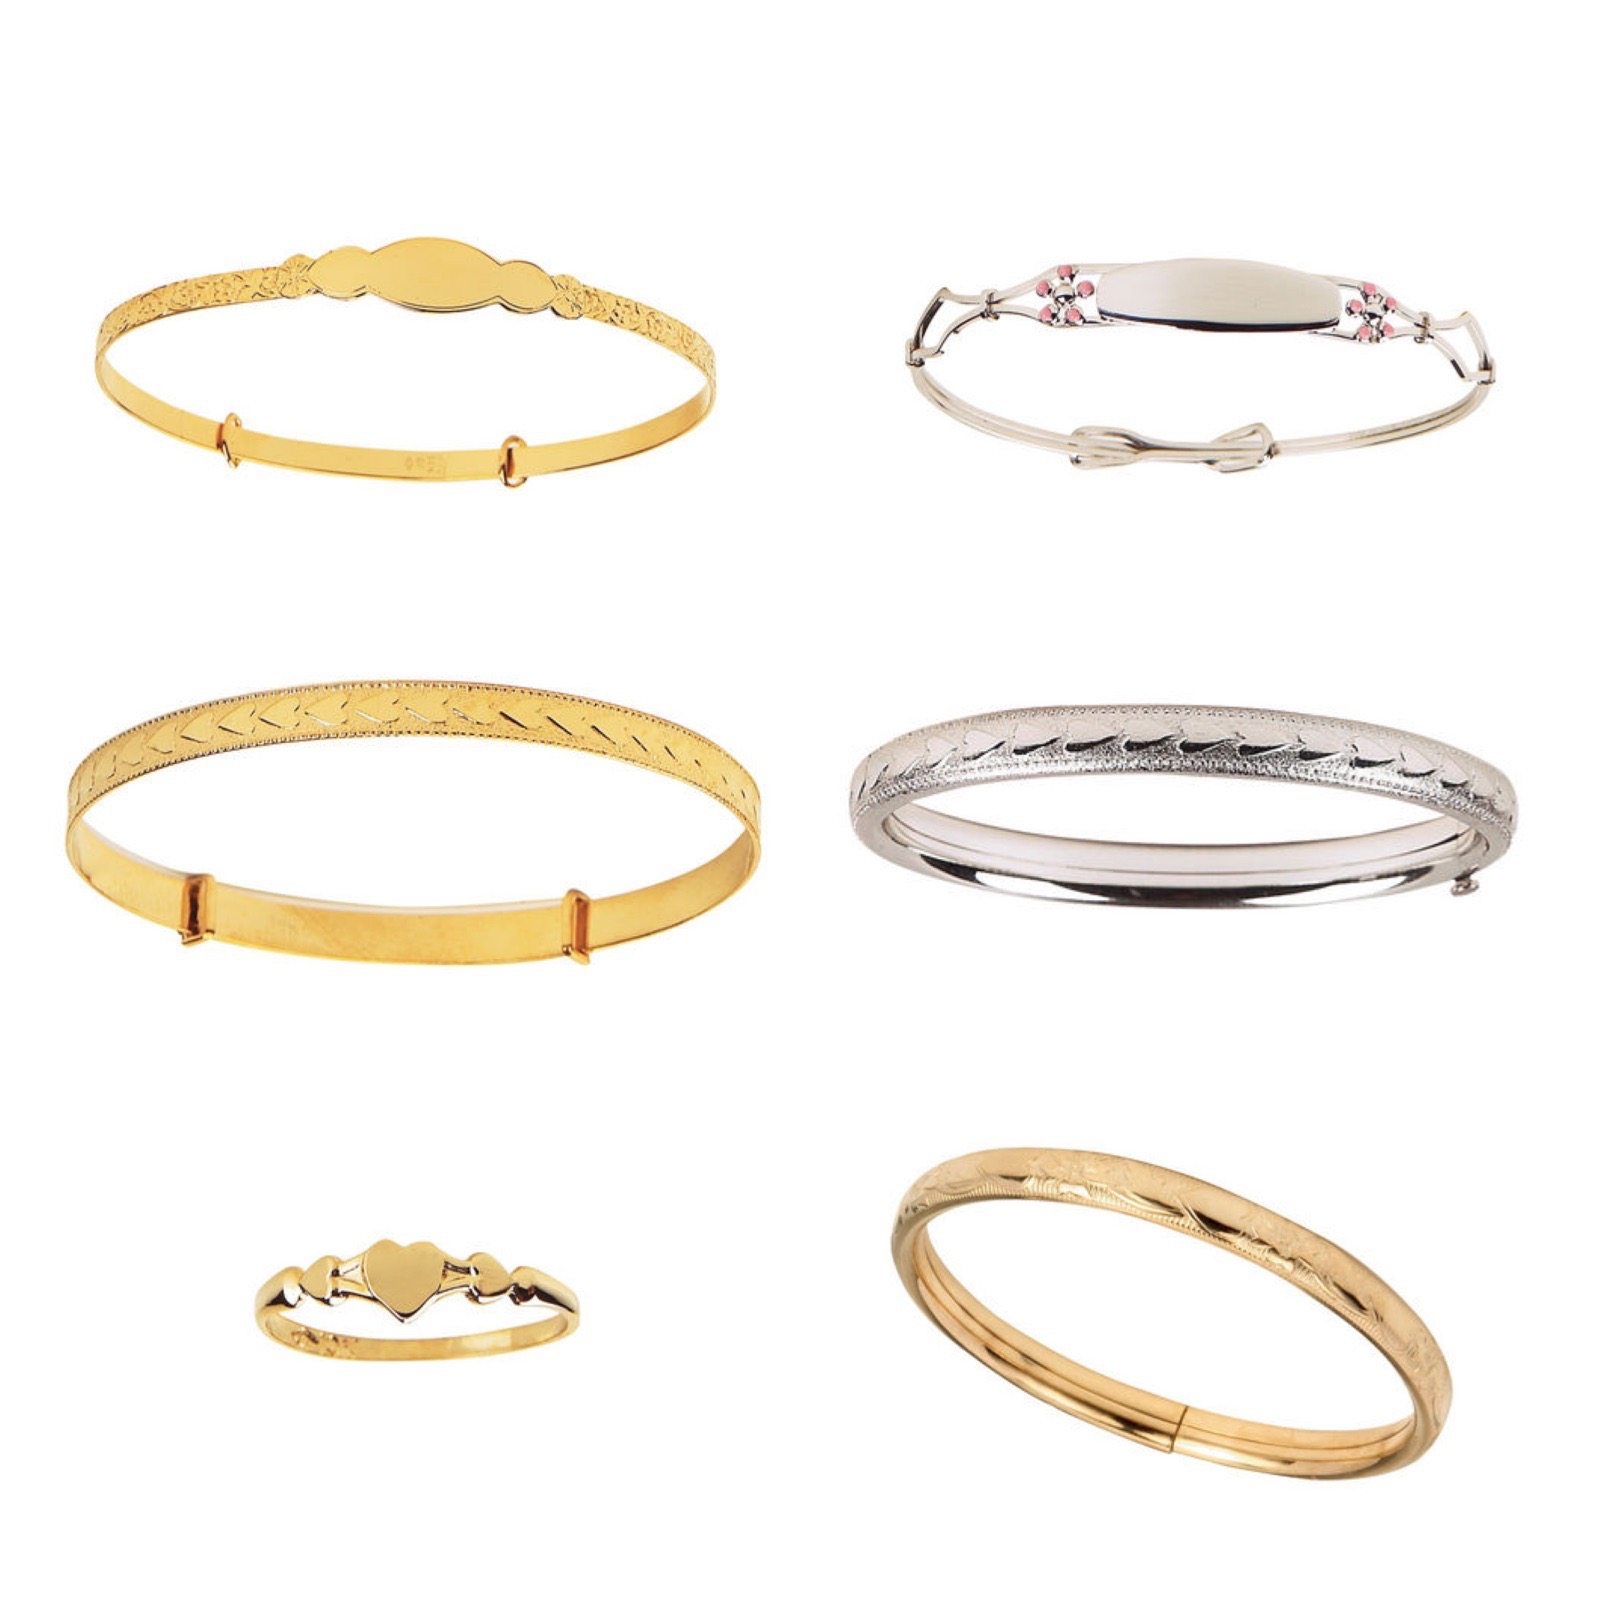 Baby Bangle Bracelets and Baby Ring